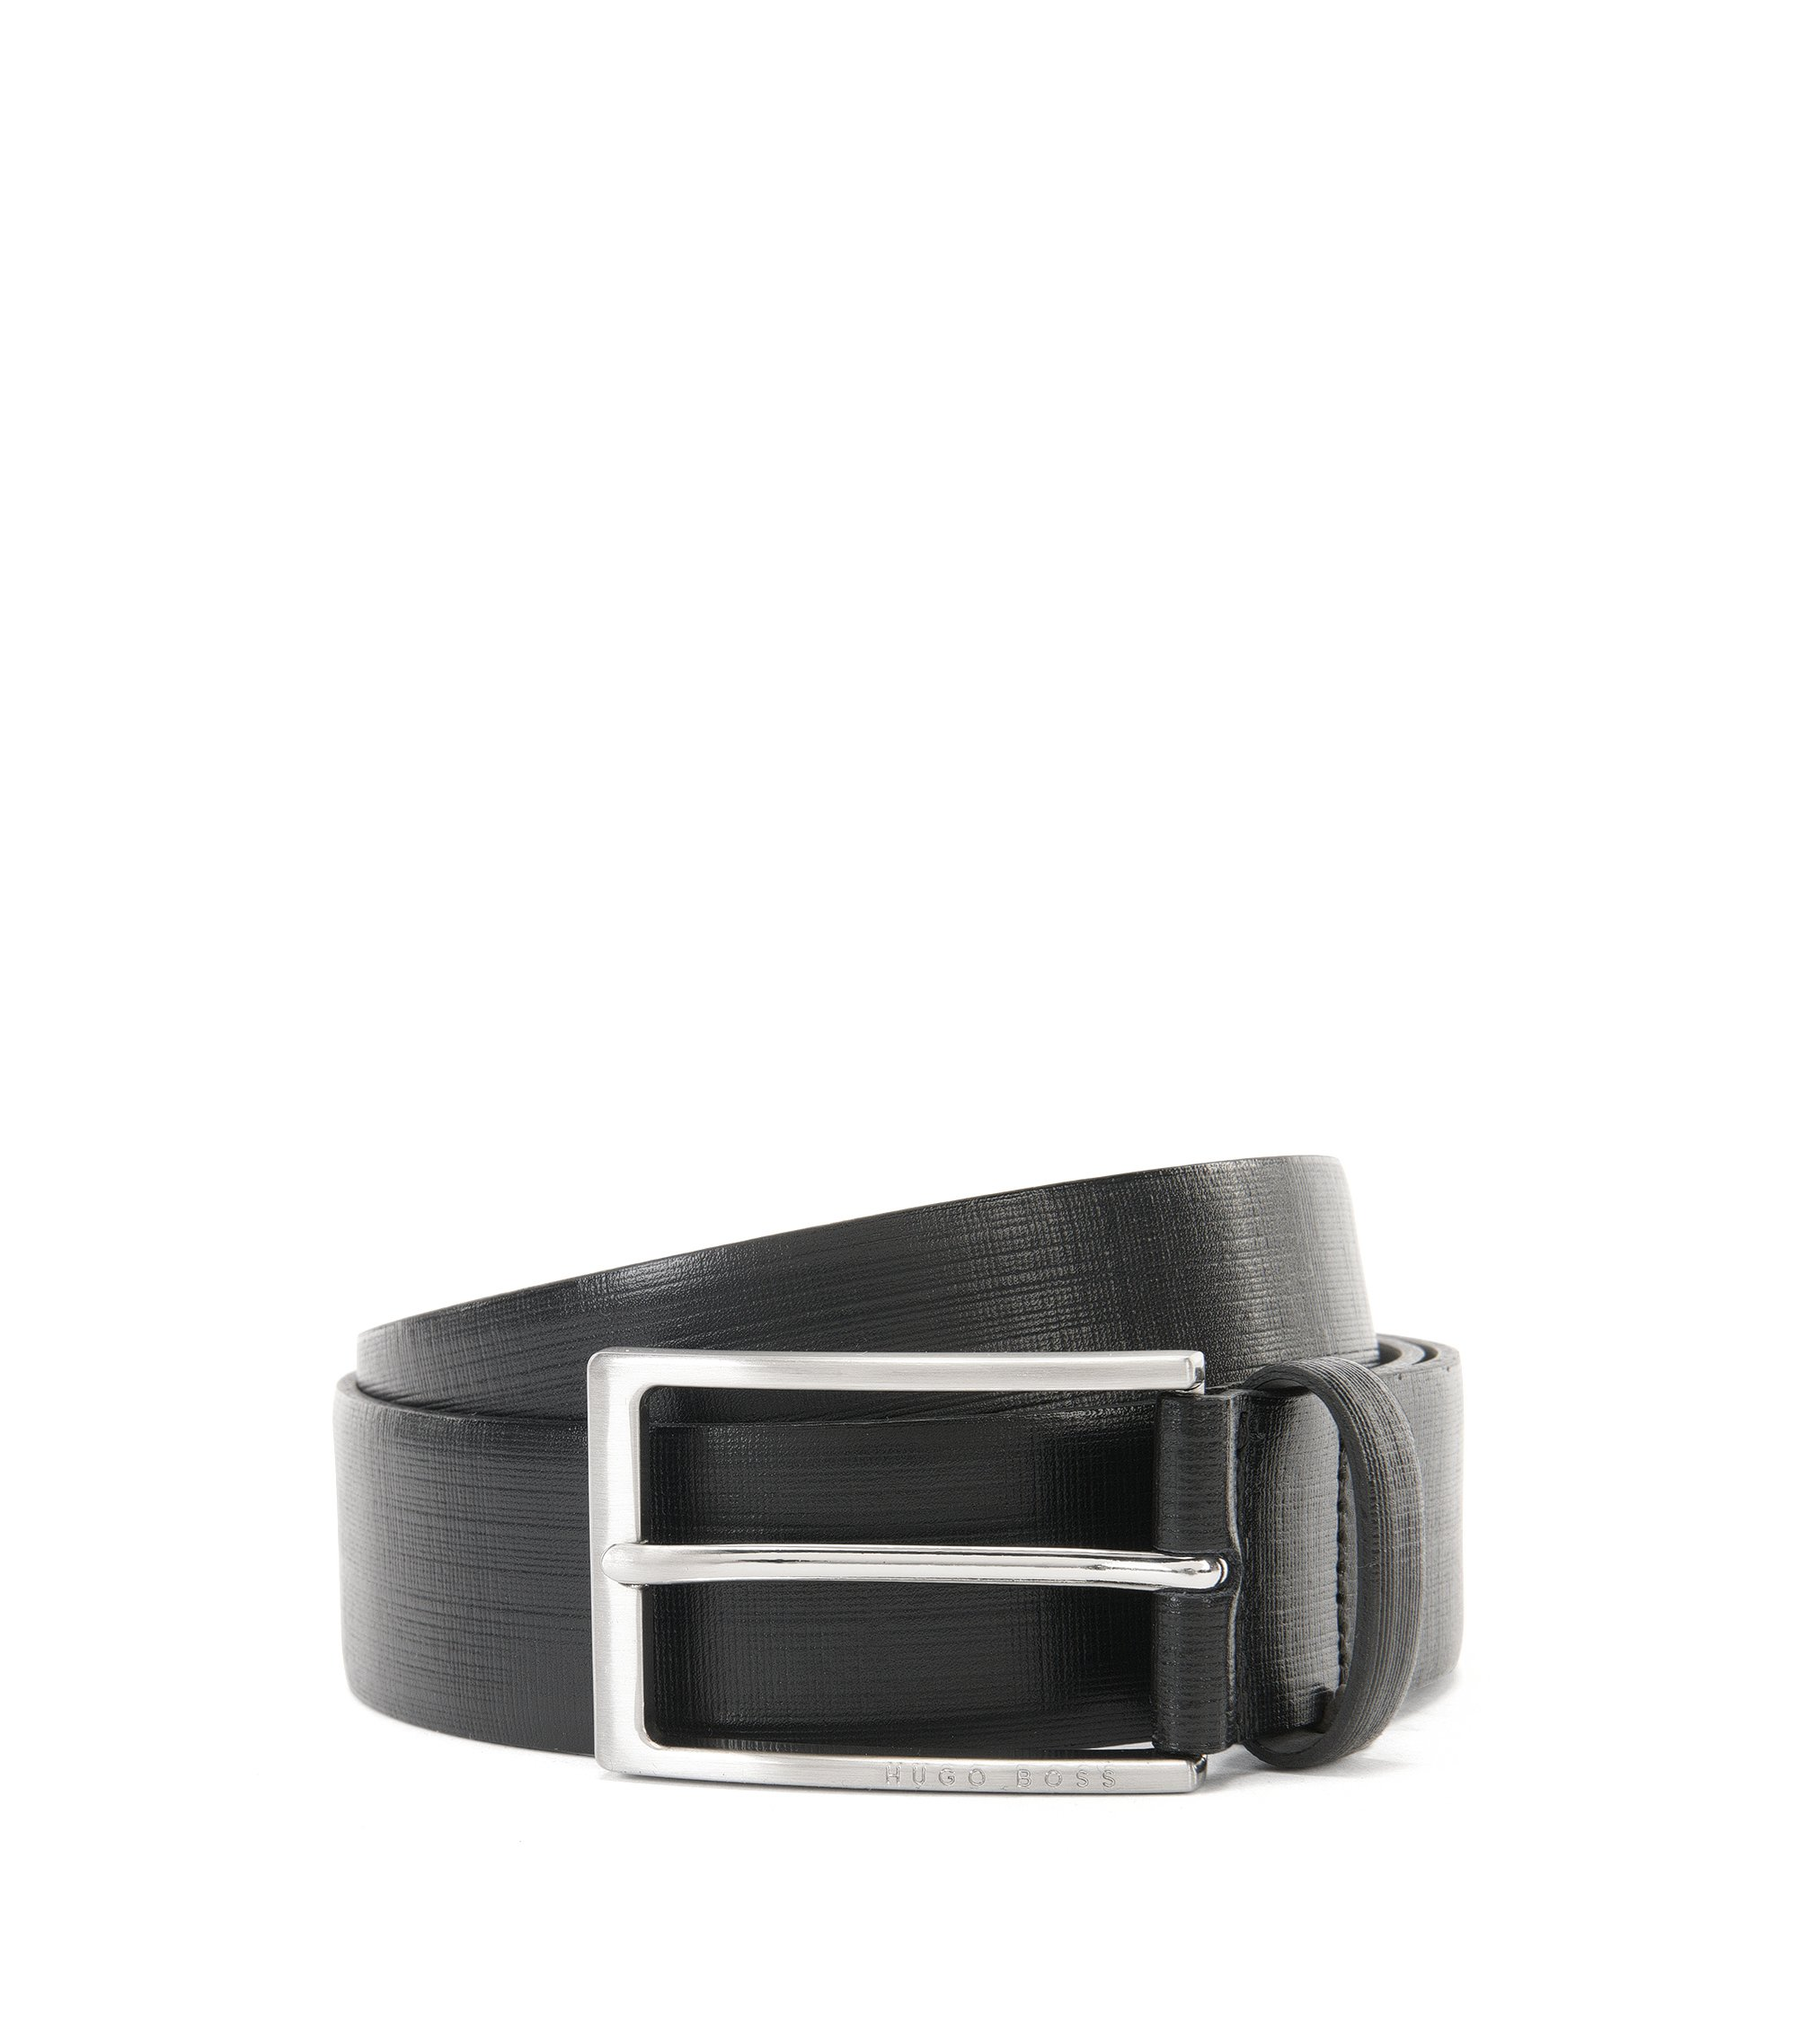 Leather belt with printed detail, Black